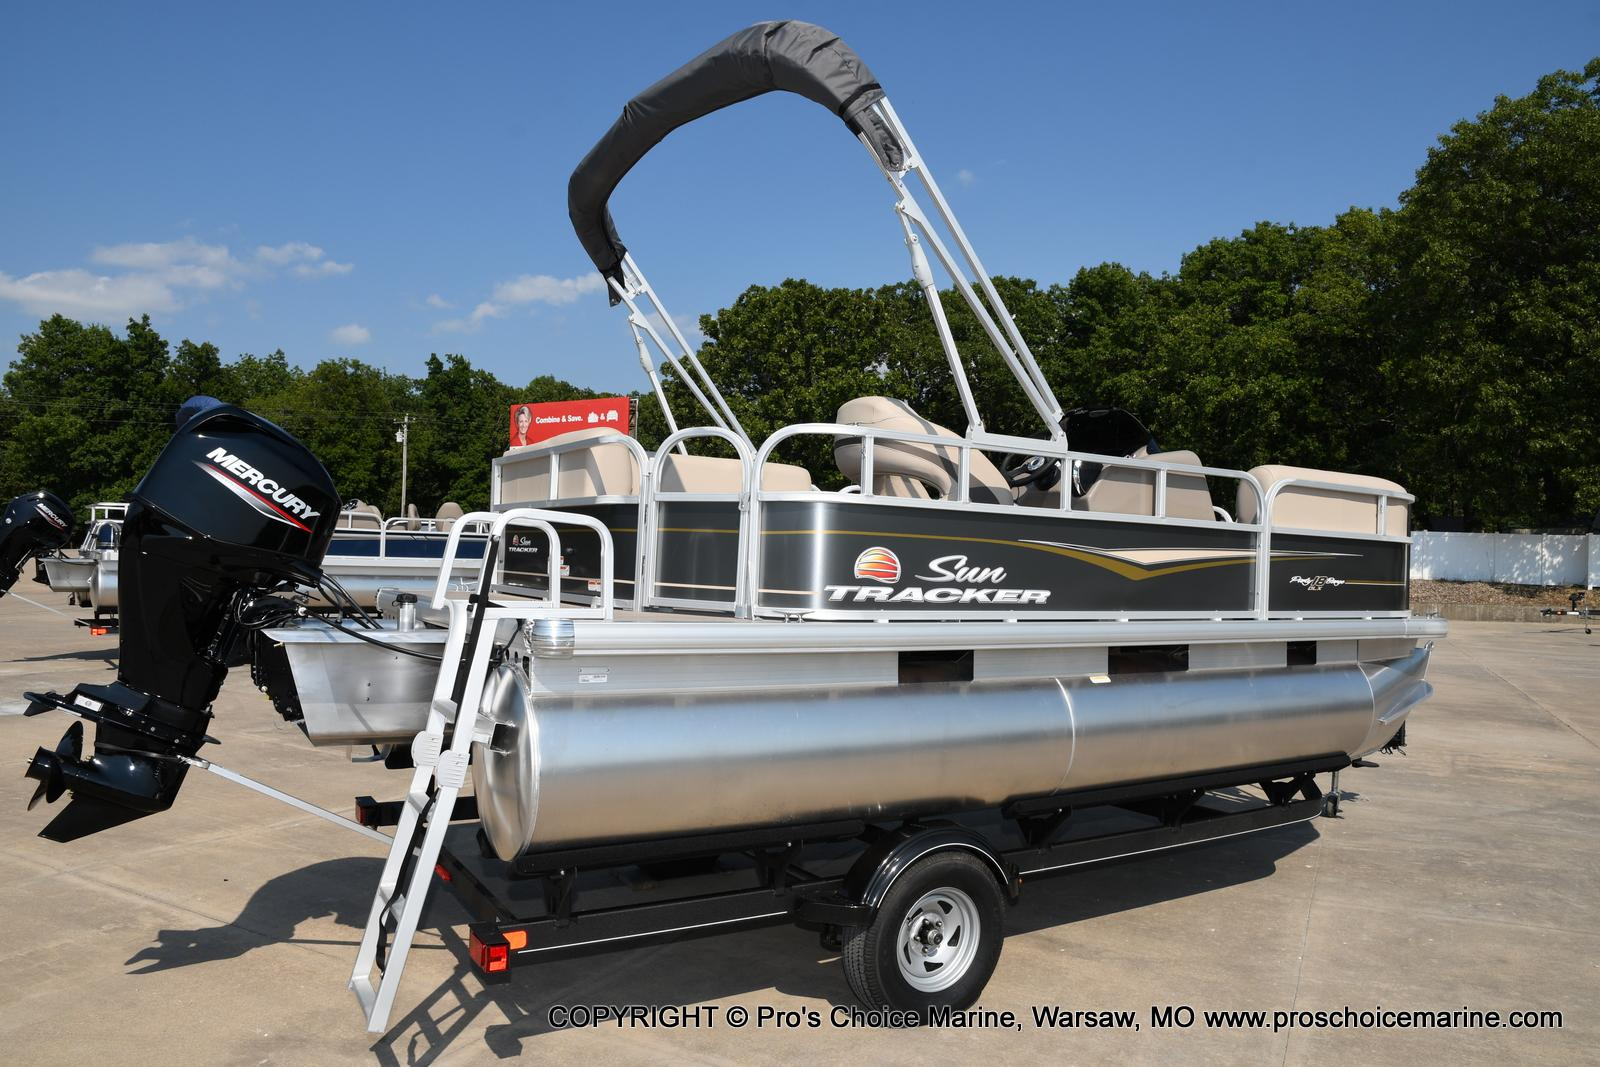 2021 Sun Tracker boat for sale, model of the boat is Party Barge 18 DLX & Image # 43 of 50